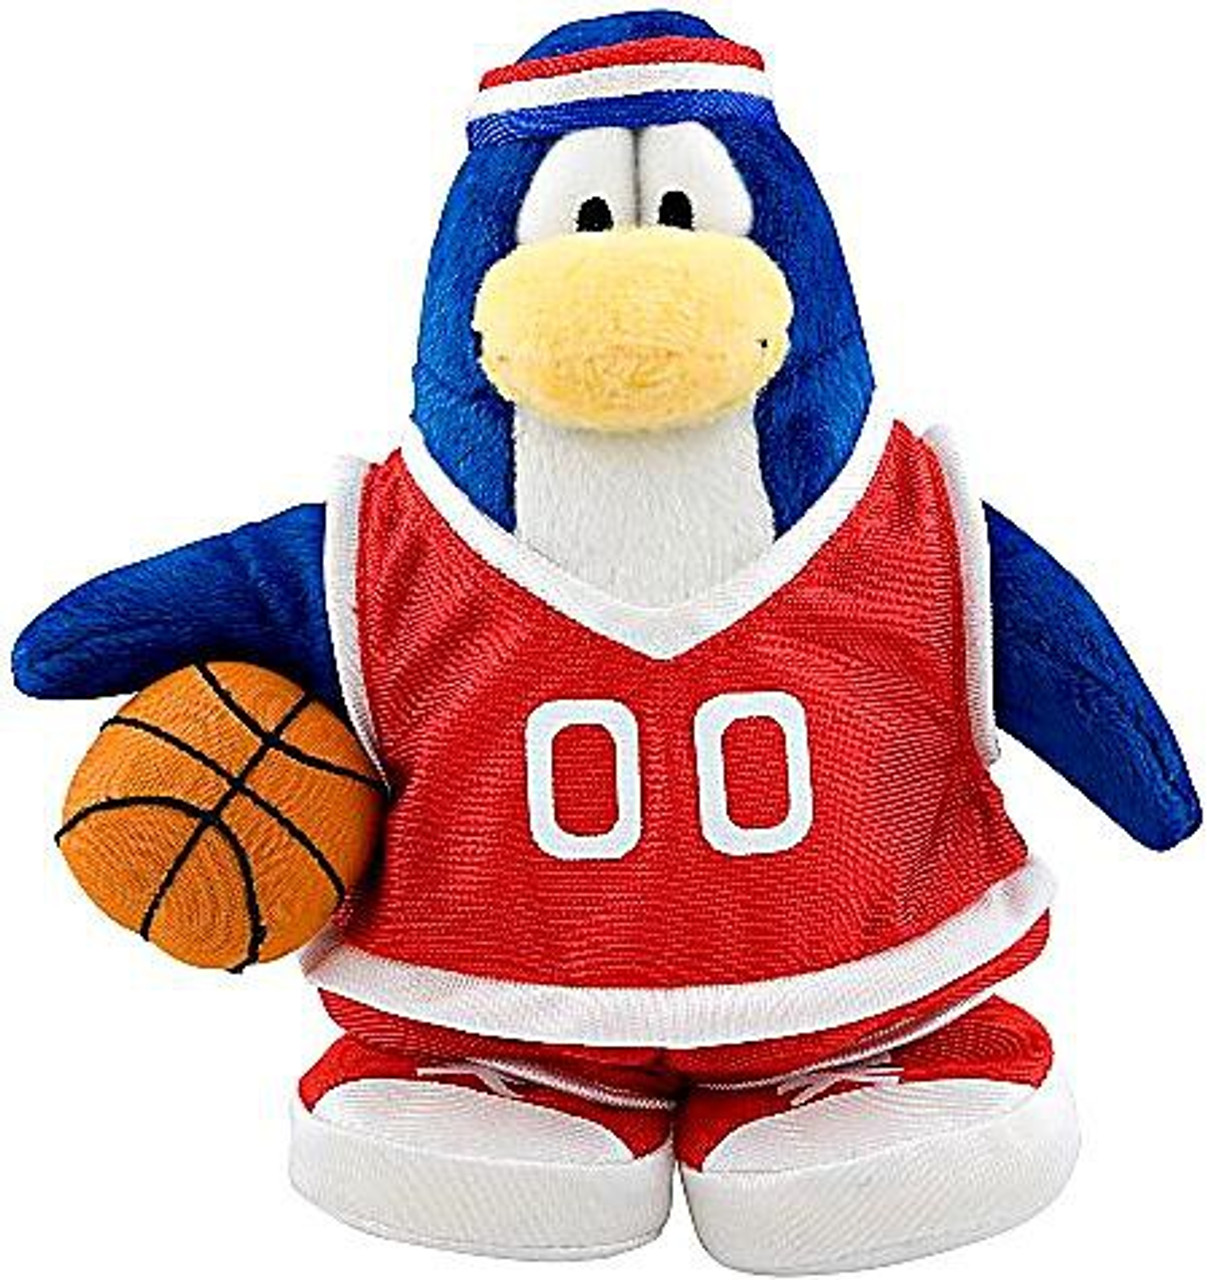 Club Penguin Series 7 Basketball Player 6.5-Inch Plush Figure [Red Uniform]